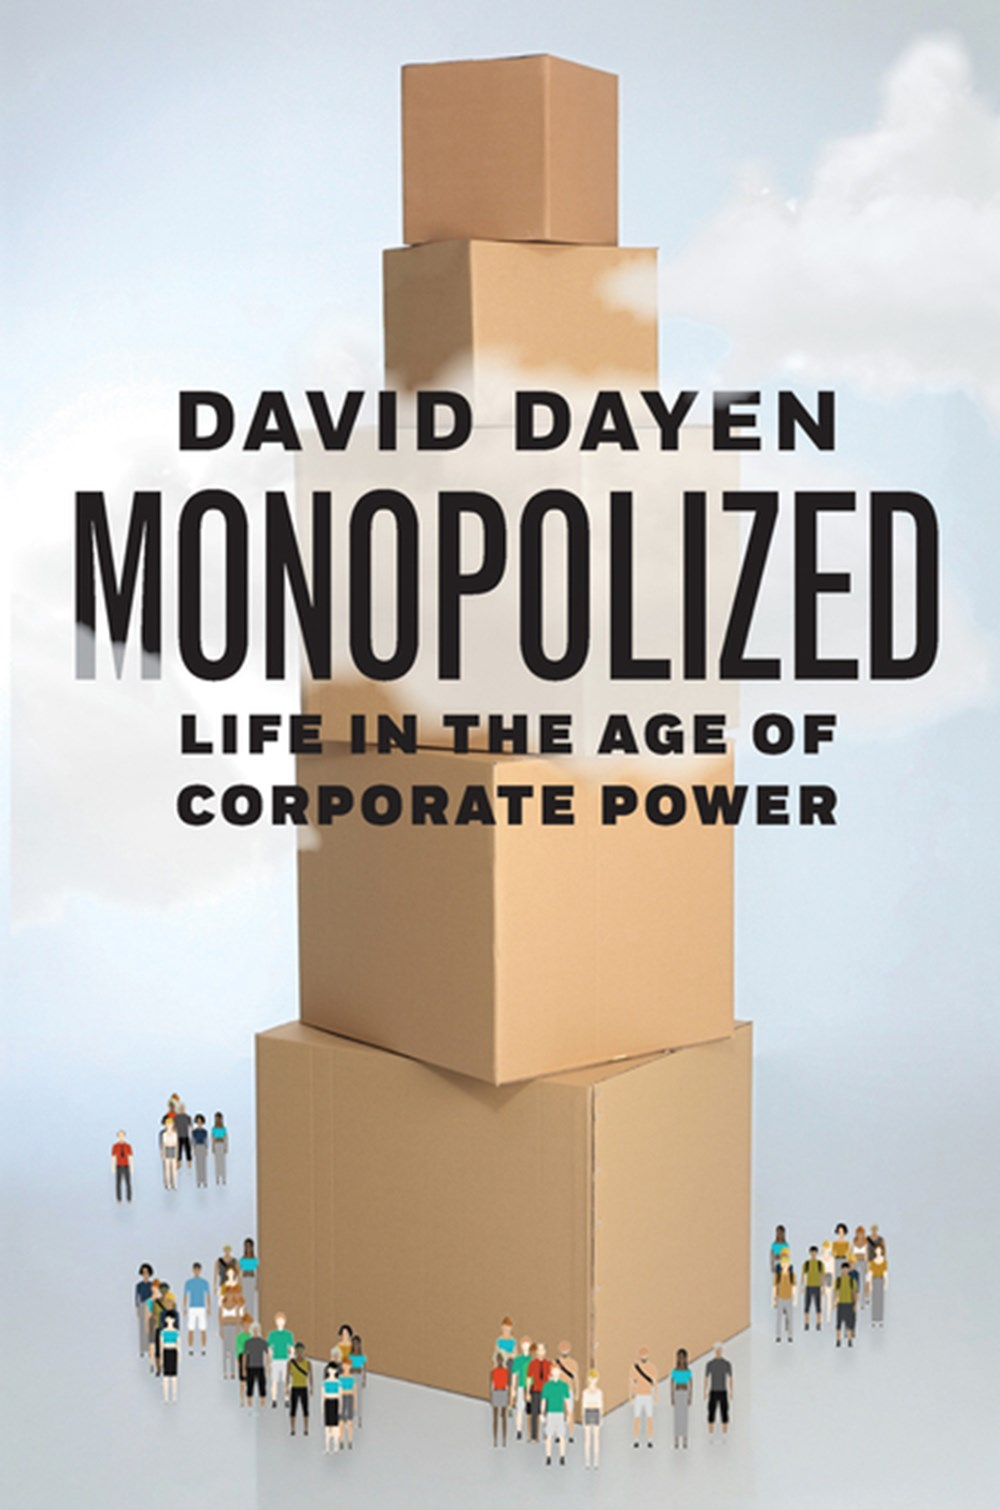 Monopolized Life in the Age of Corporate Power